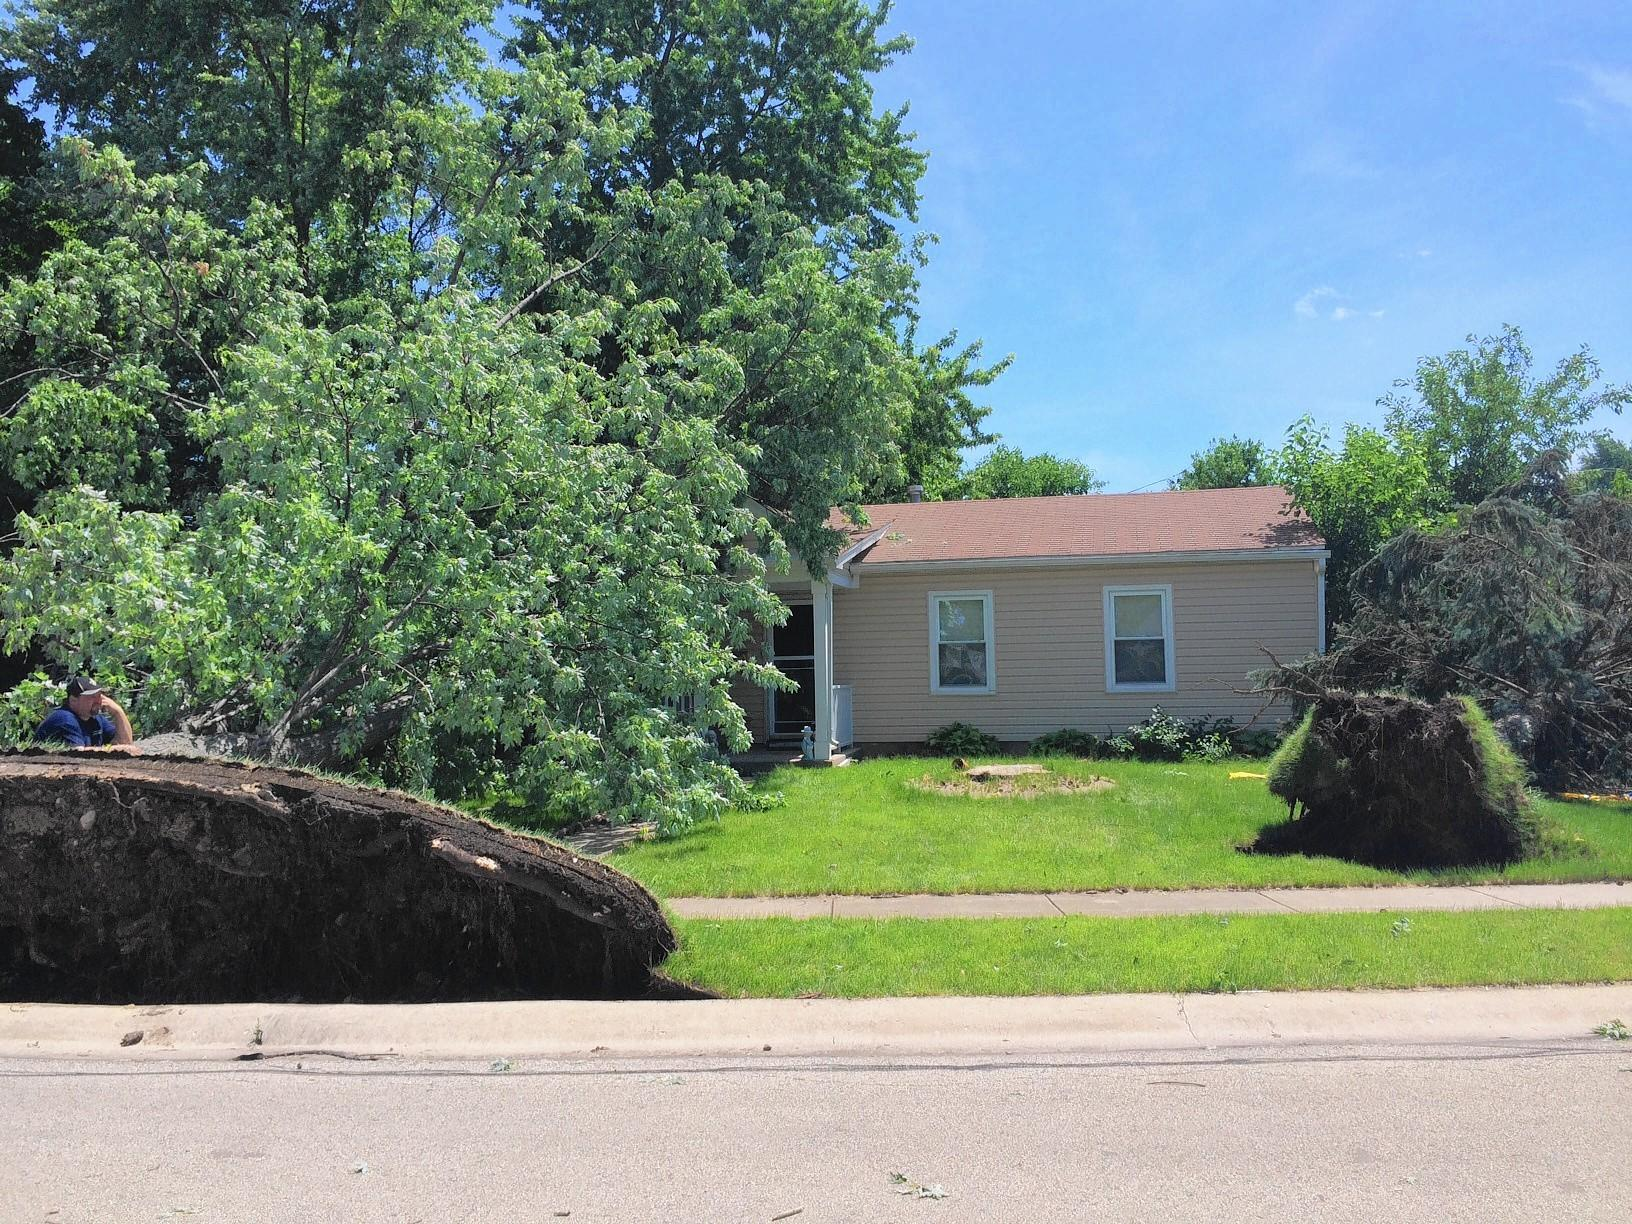 Roughly 40 percent of Romeoville's ComEd customers lost power after the June 30 storm that produced a tornadoes and uprooted trees.